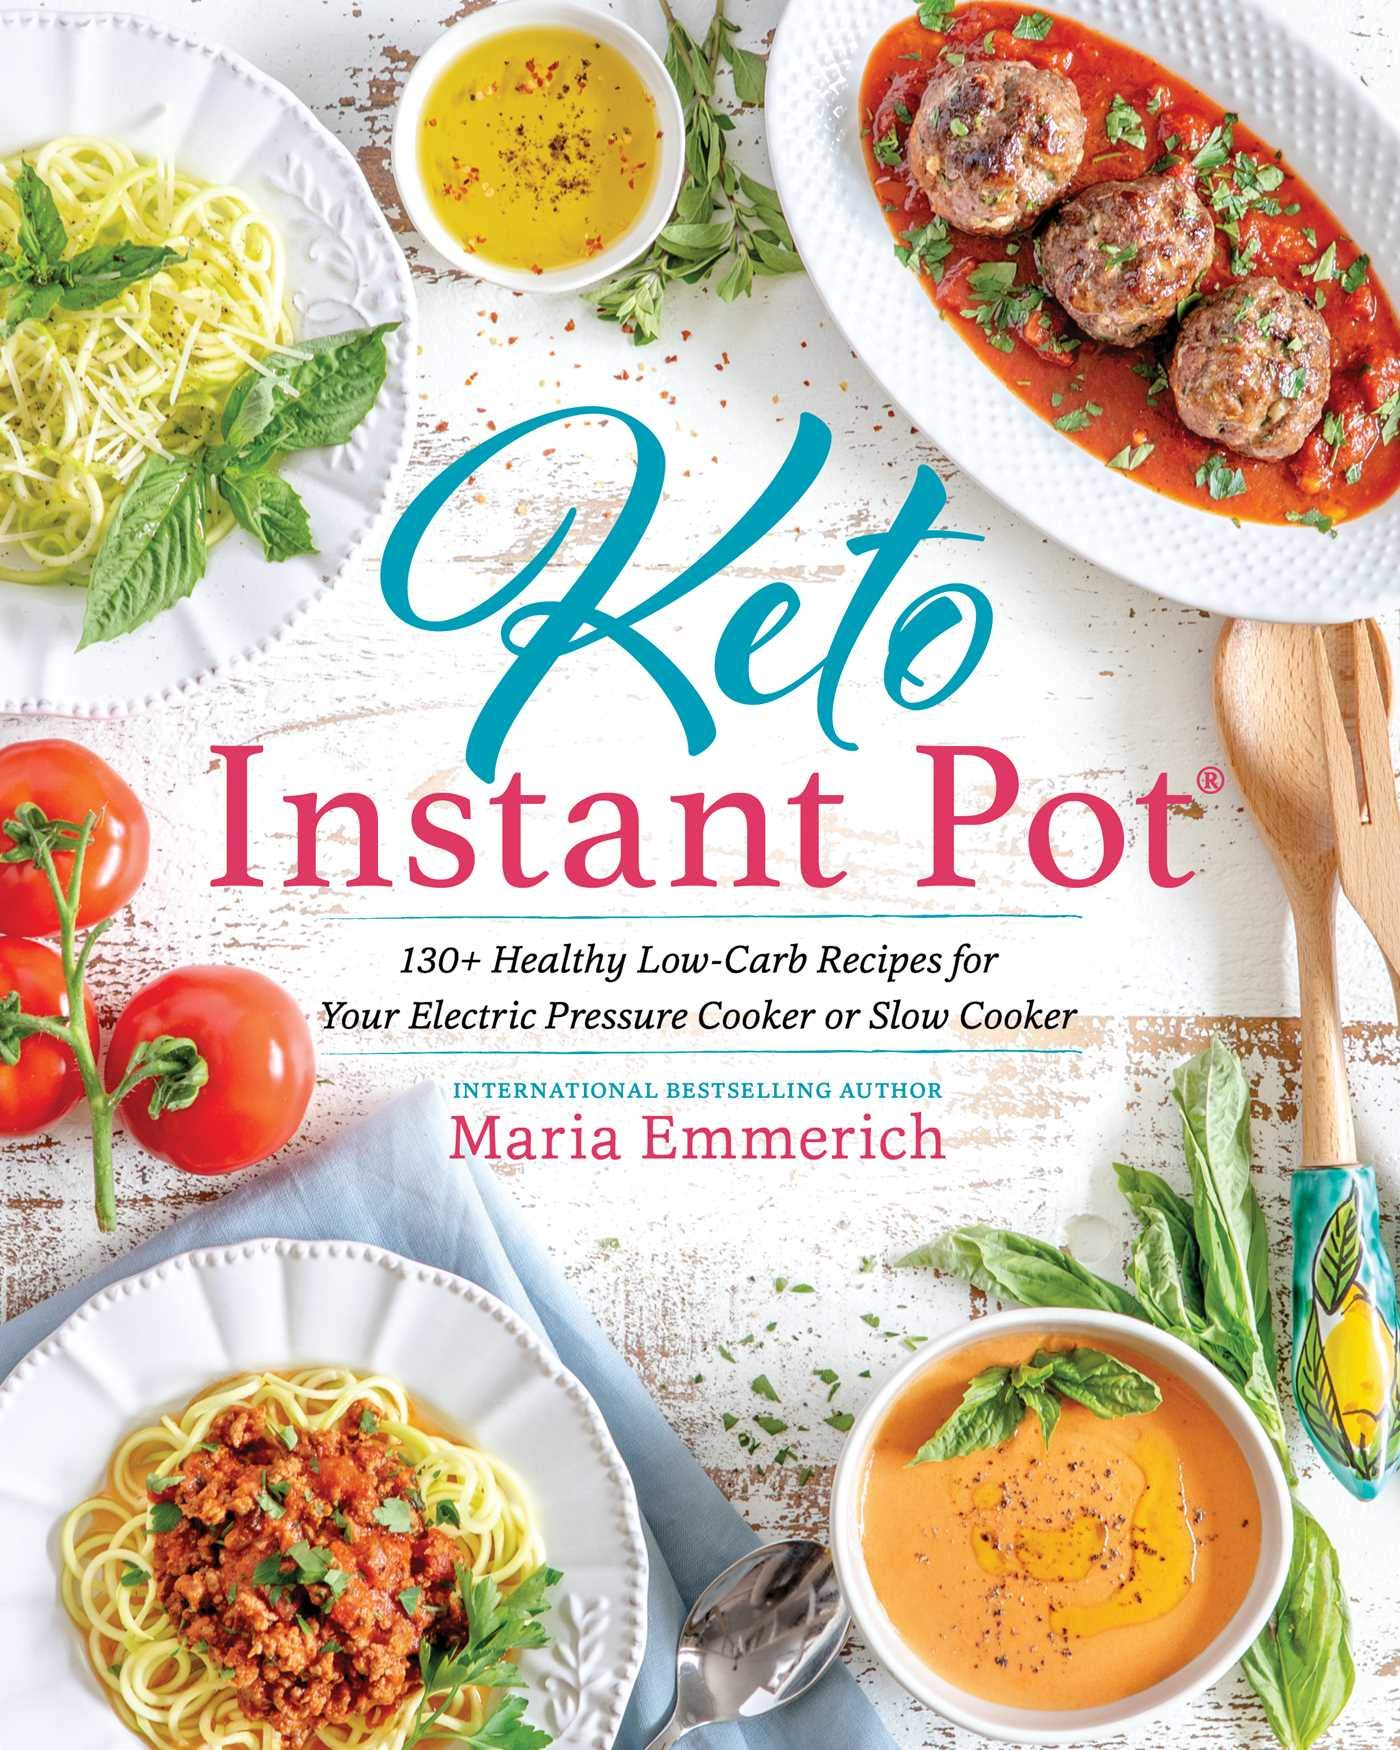 Keto Instant Pot: 130+ Healthy Low-Carb Recipes for Your Electric Pressure Cooker or Slow Cooker by Victory Belt Publishing